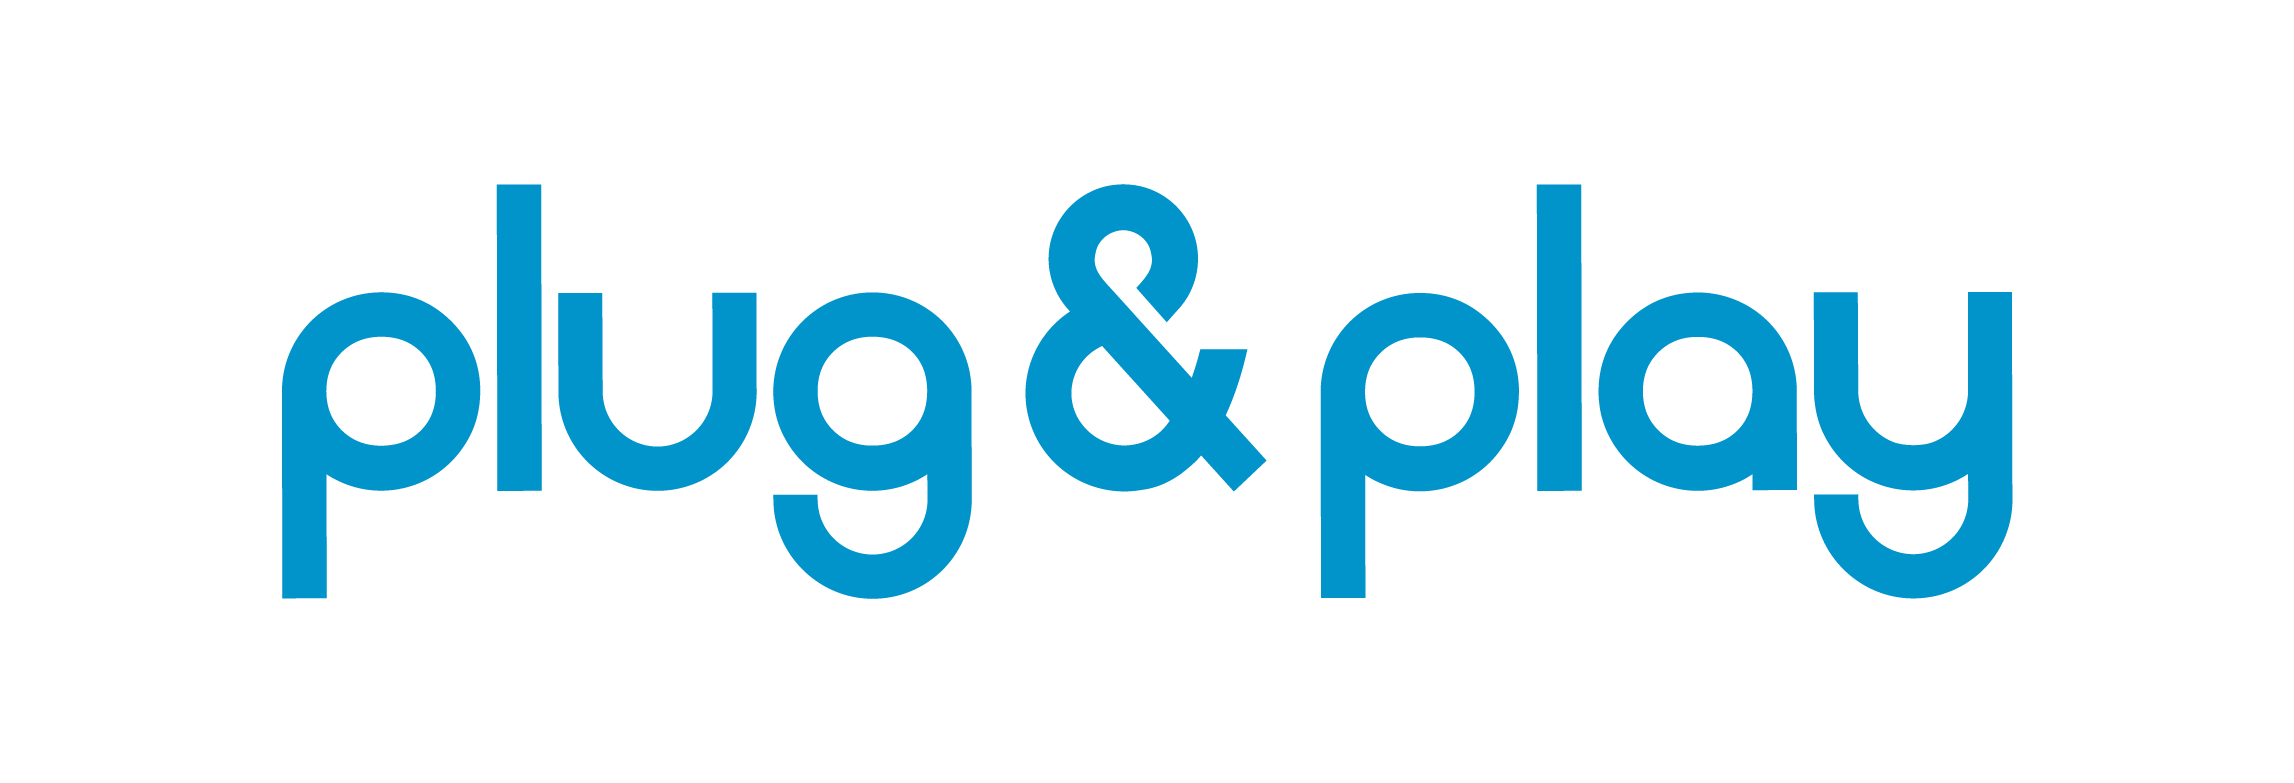 Plug-and-Play-Logo.png